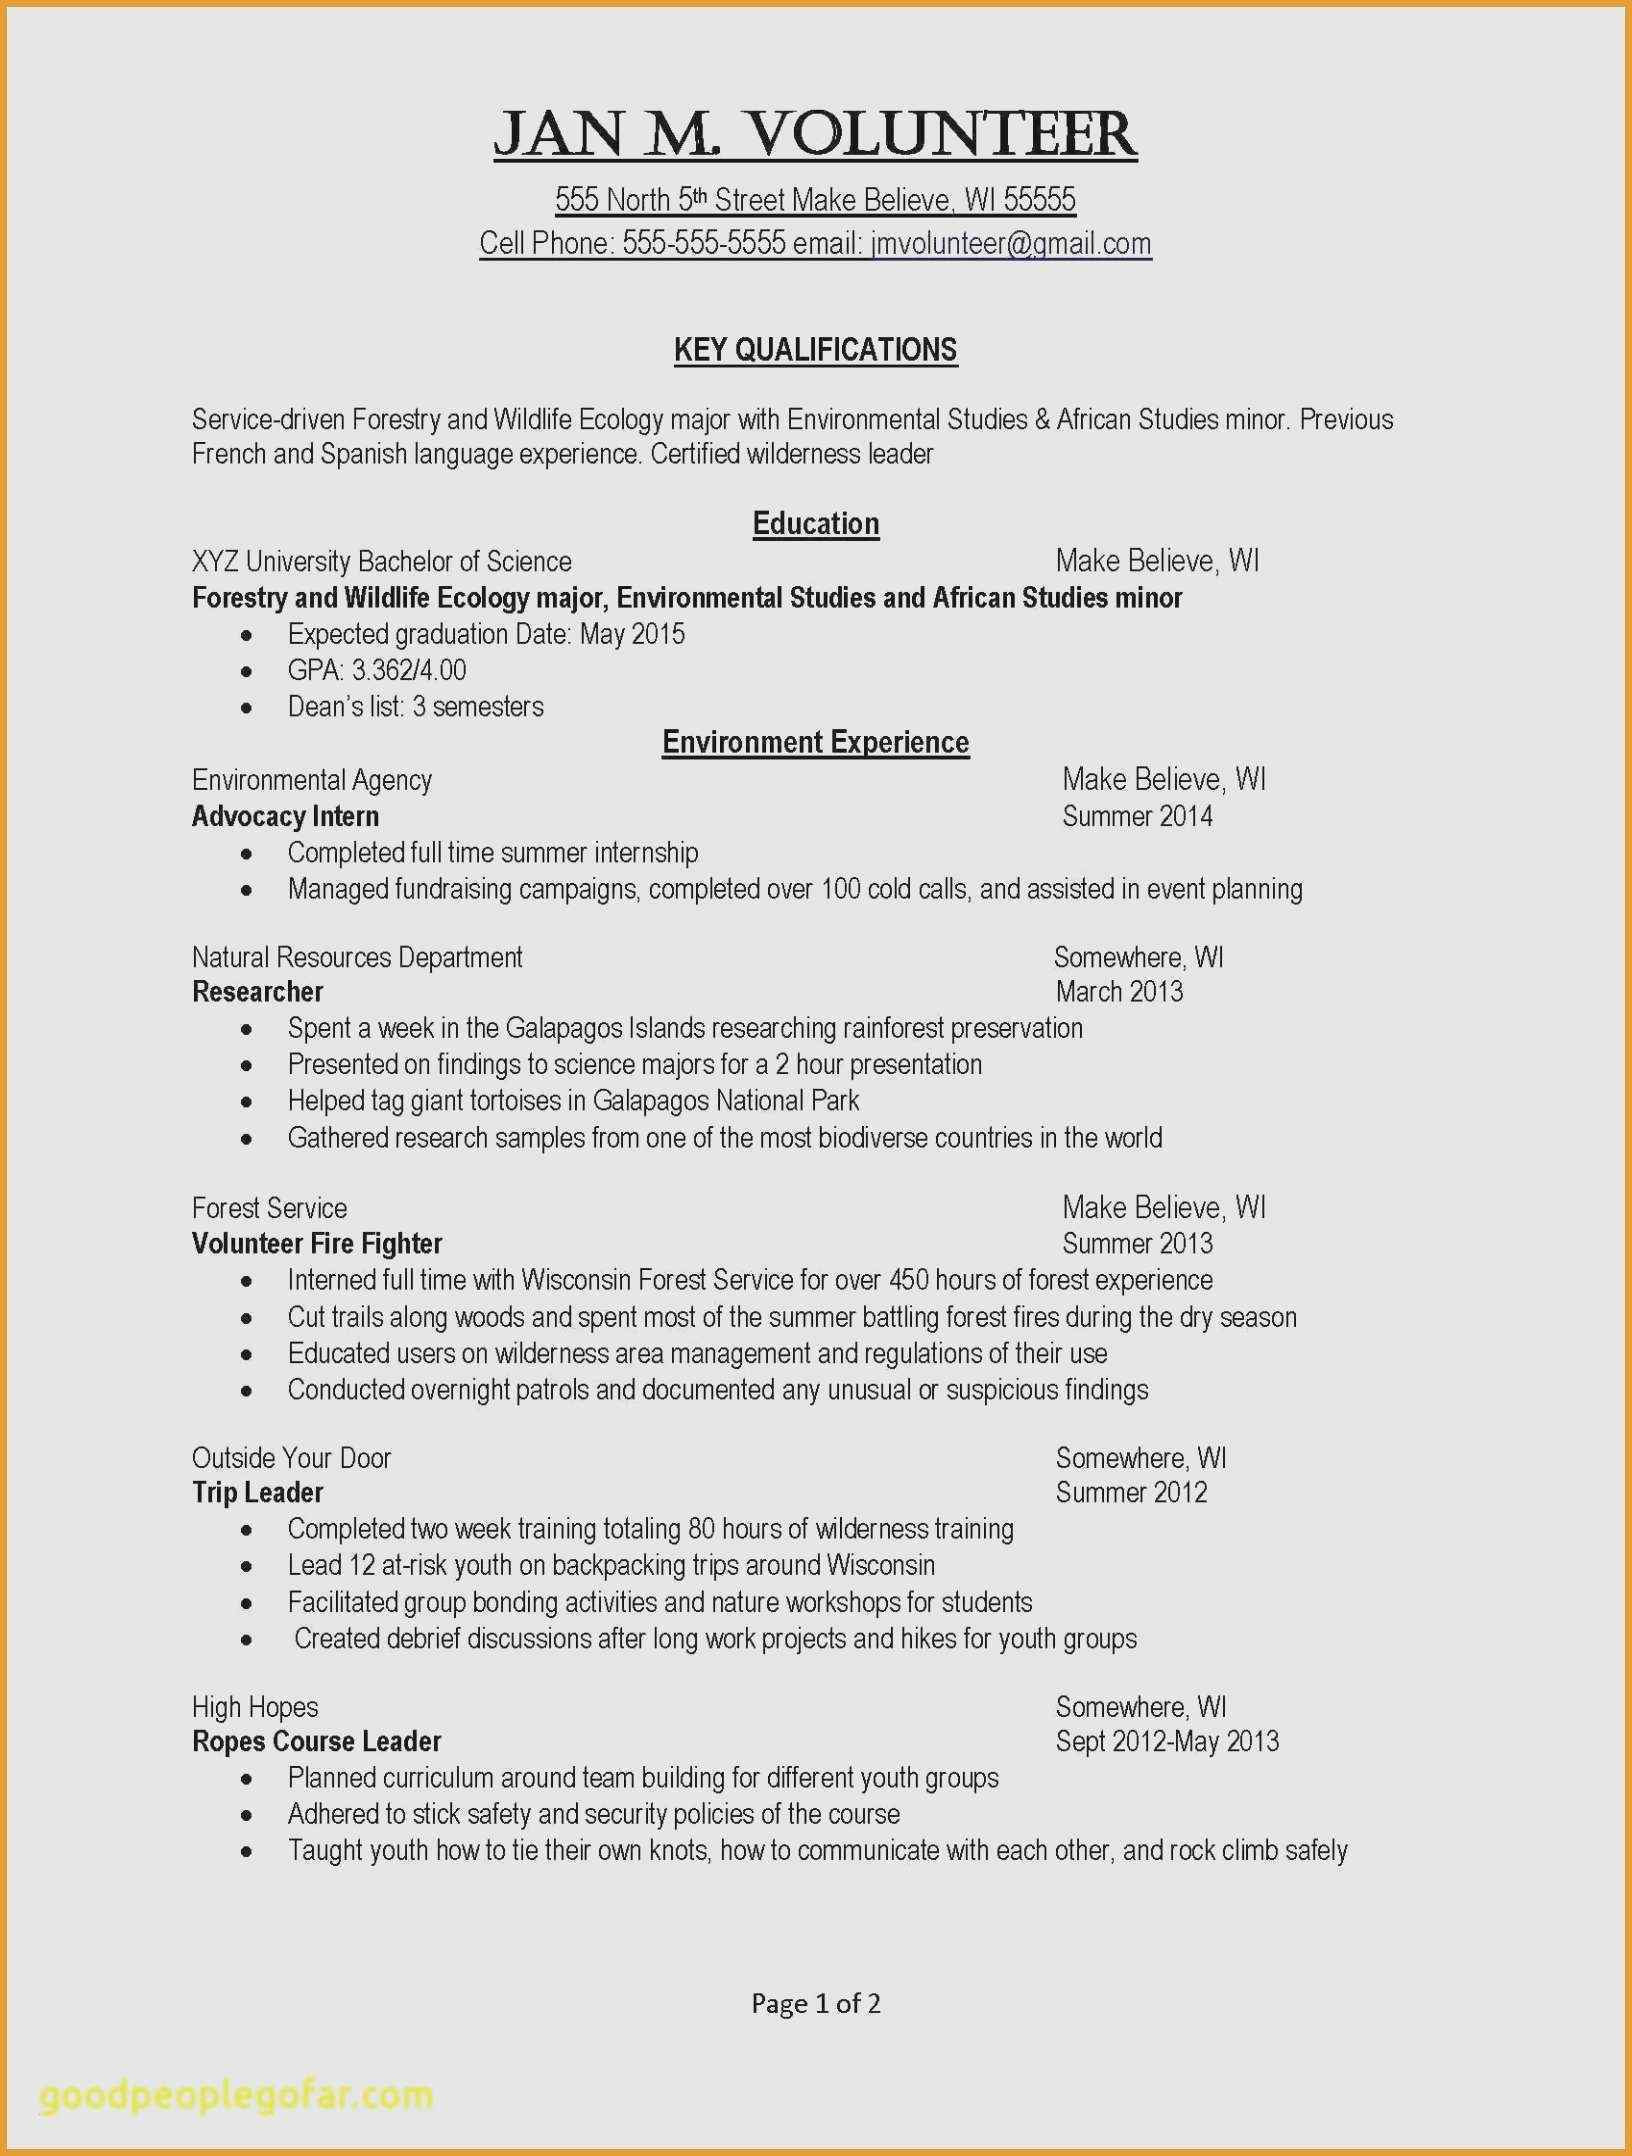 ub resume template Collection-Ub04 Sample Claim form Unique Fice Resume Templates Awesome Skills Resume Template 18-f